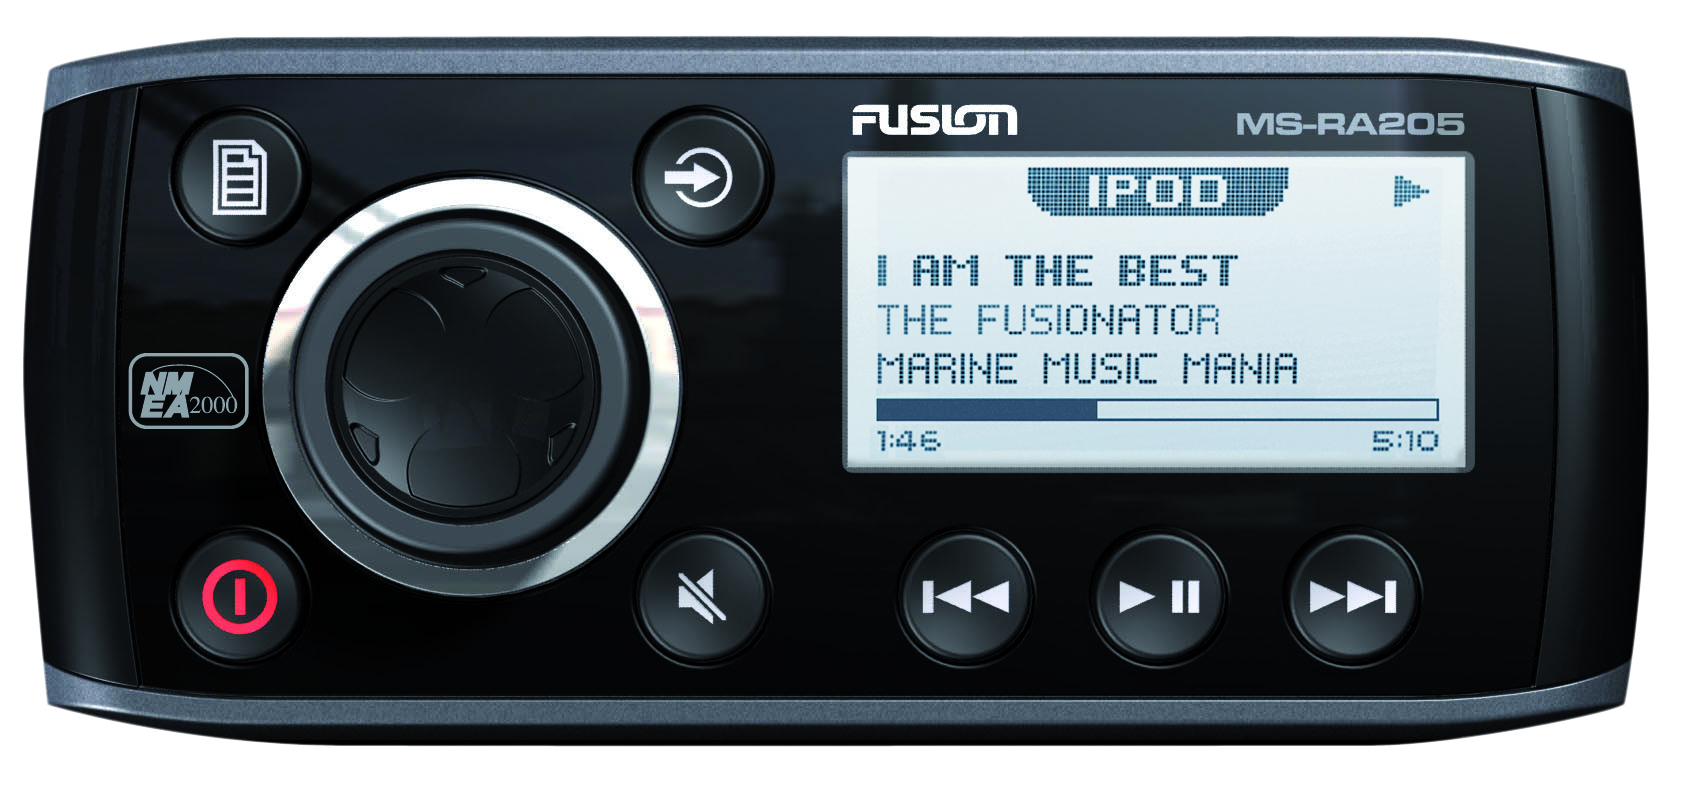 fusion ms ra205 stereo unit front view